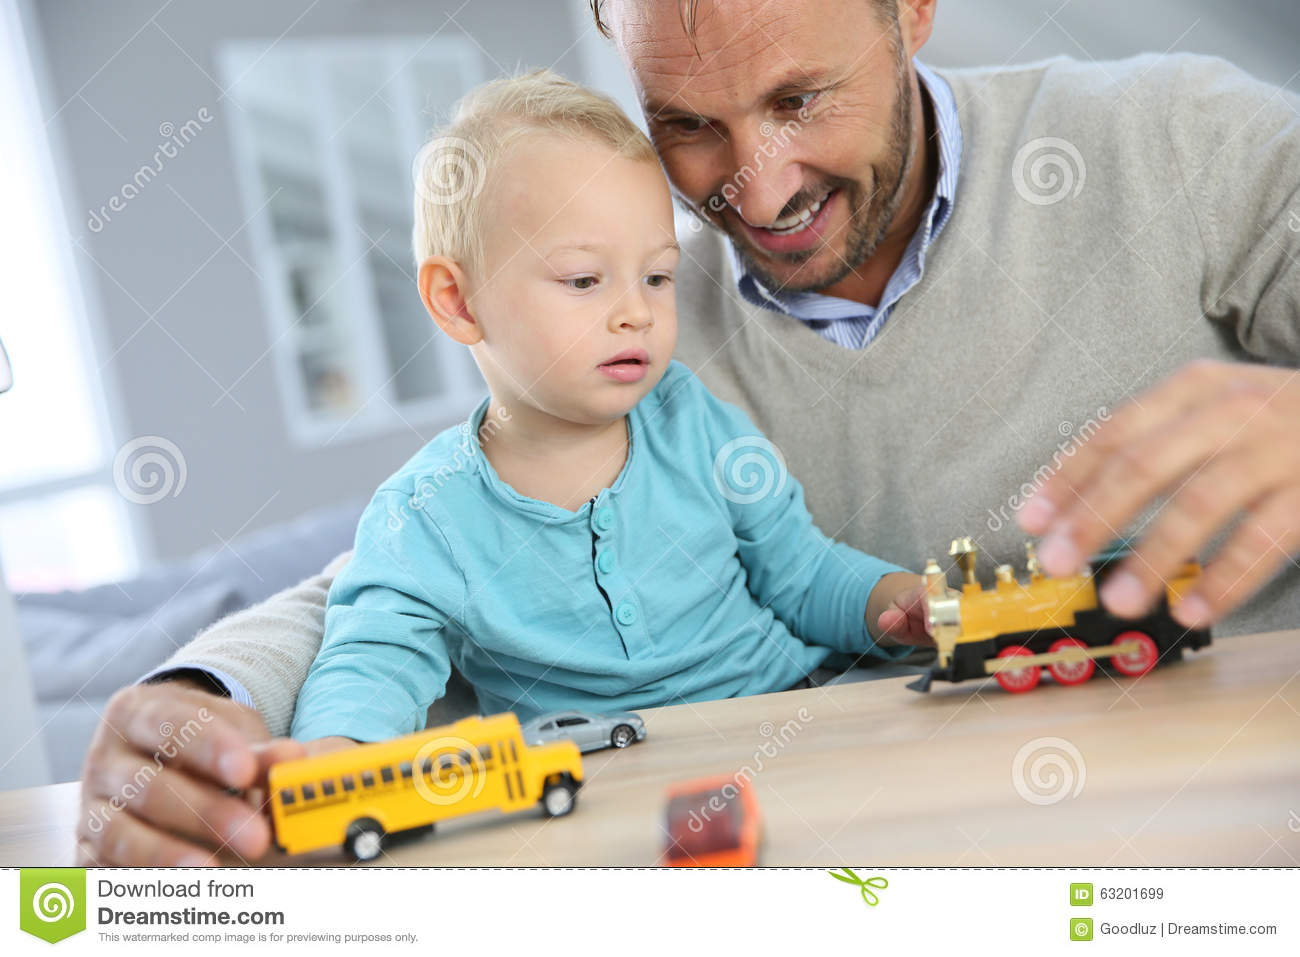 Boy Toys For Dads : Baby boy and his father playing with cars stock image